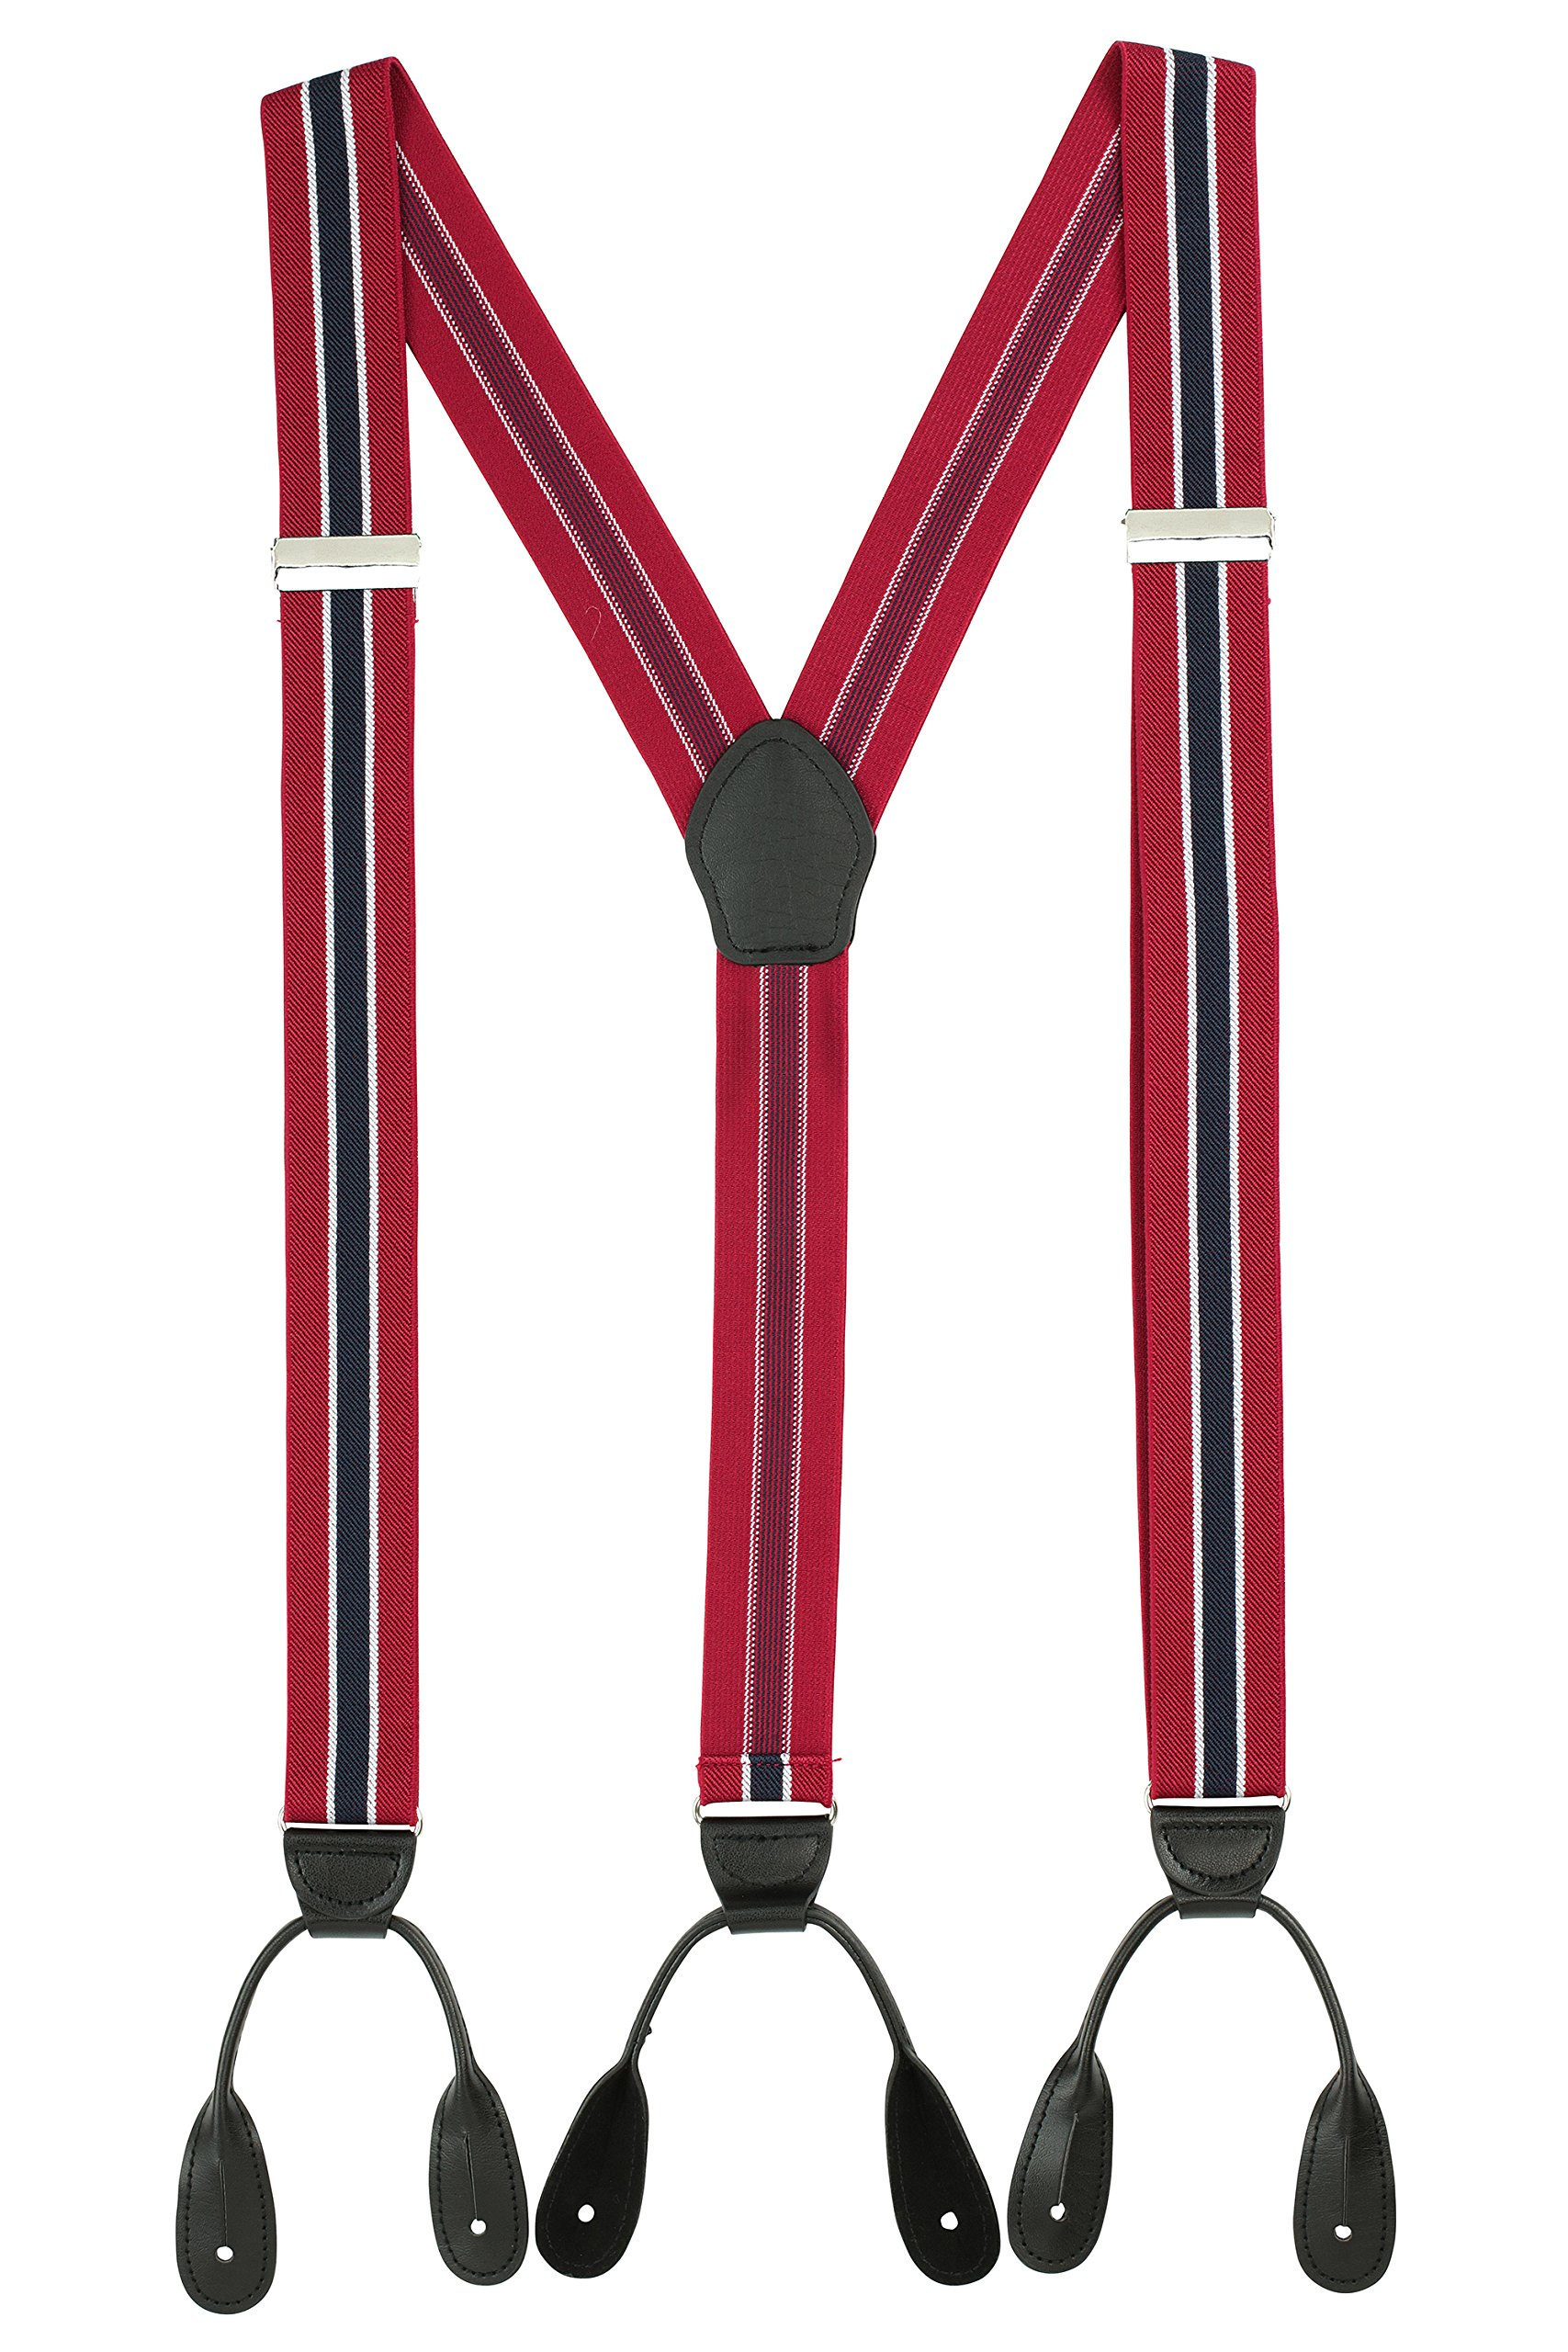 Suspenders for Men Leather Button End Tuxedo Y Back Mens Suspenders Pant Braces - Red/Navy